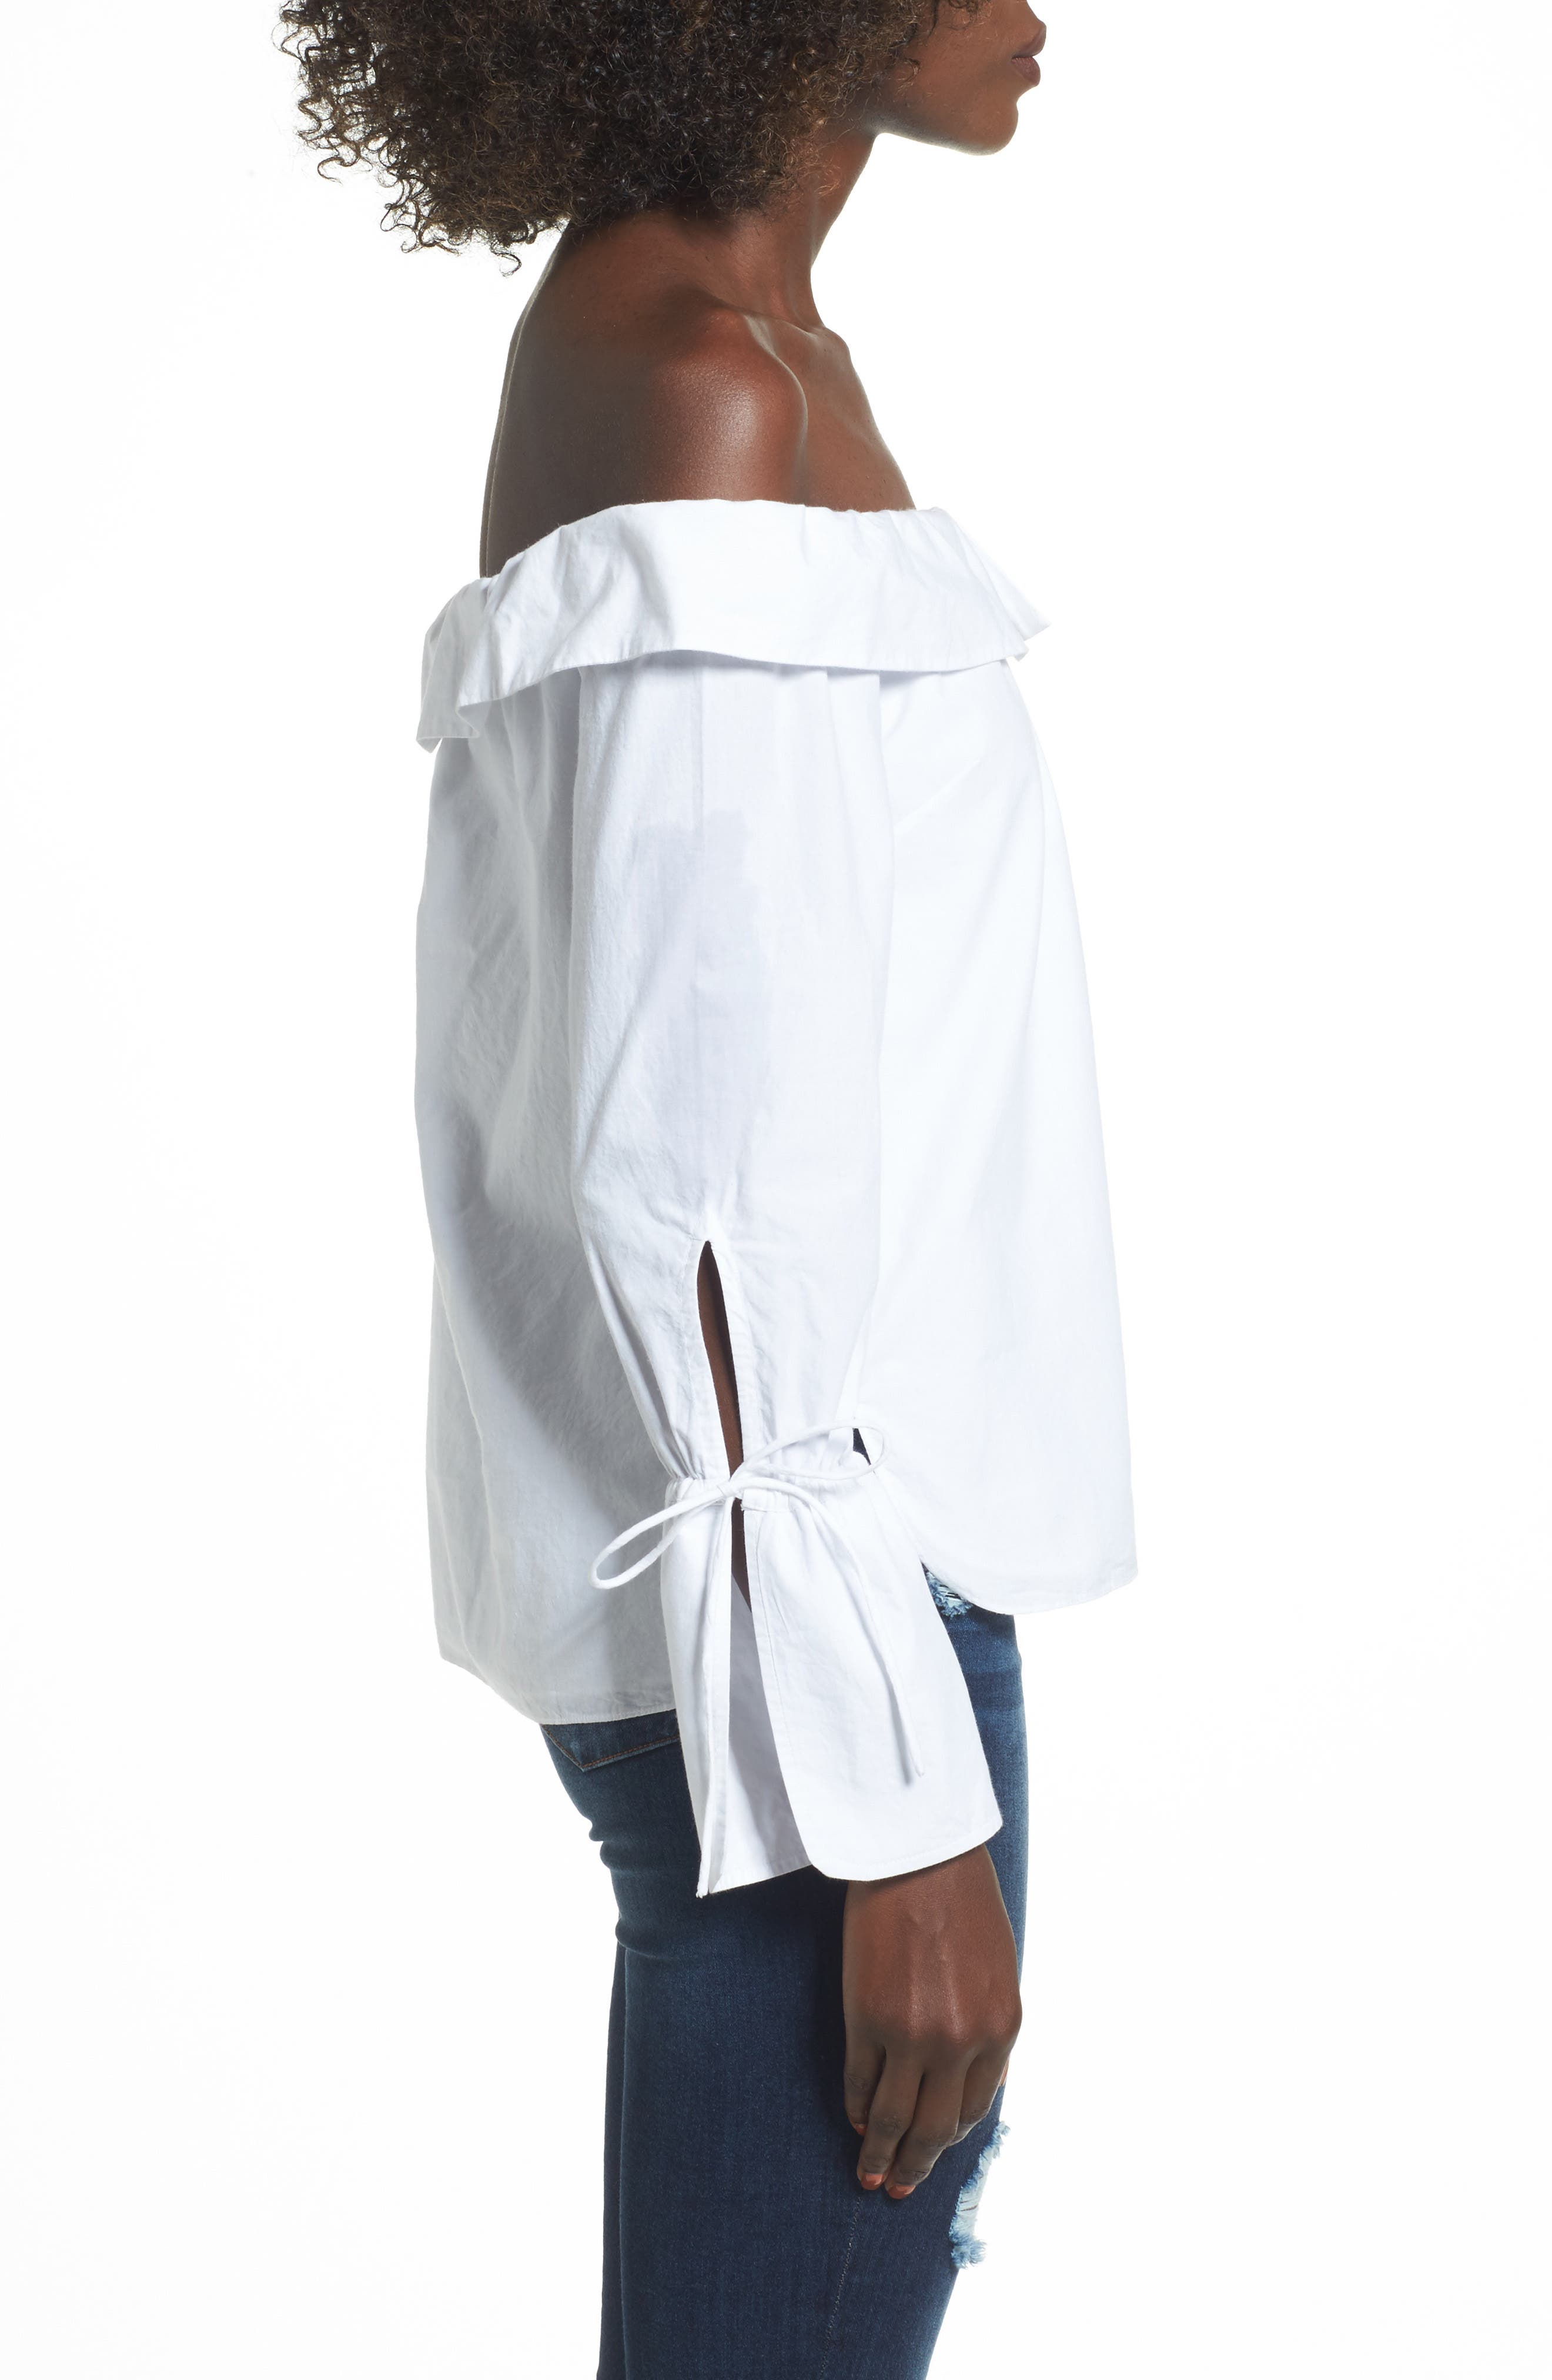 L'Academie Aria Off the Shoulder Blouse,                             Alternate thumbnail 3, color,                             100